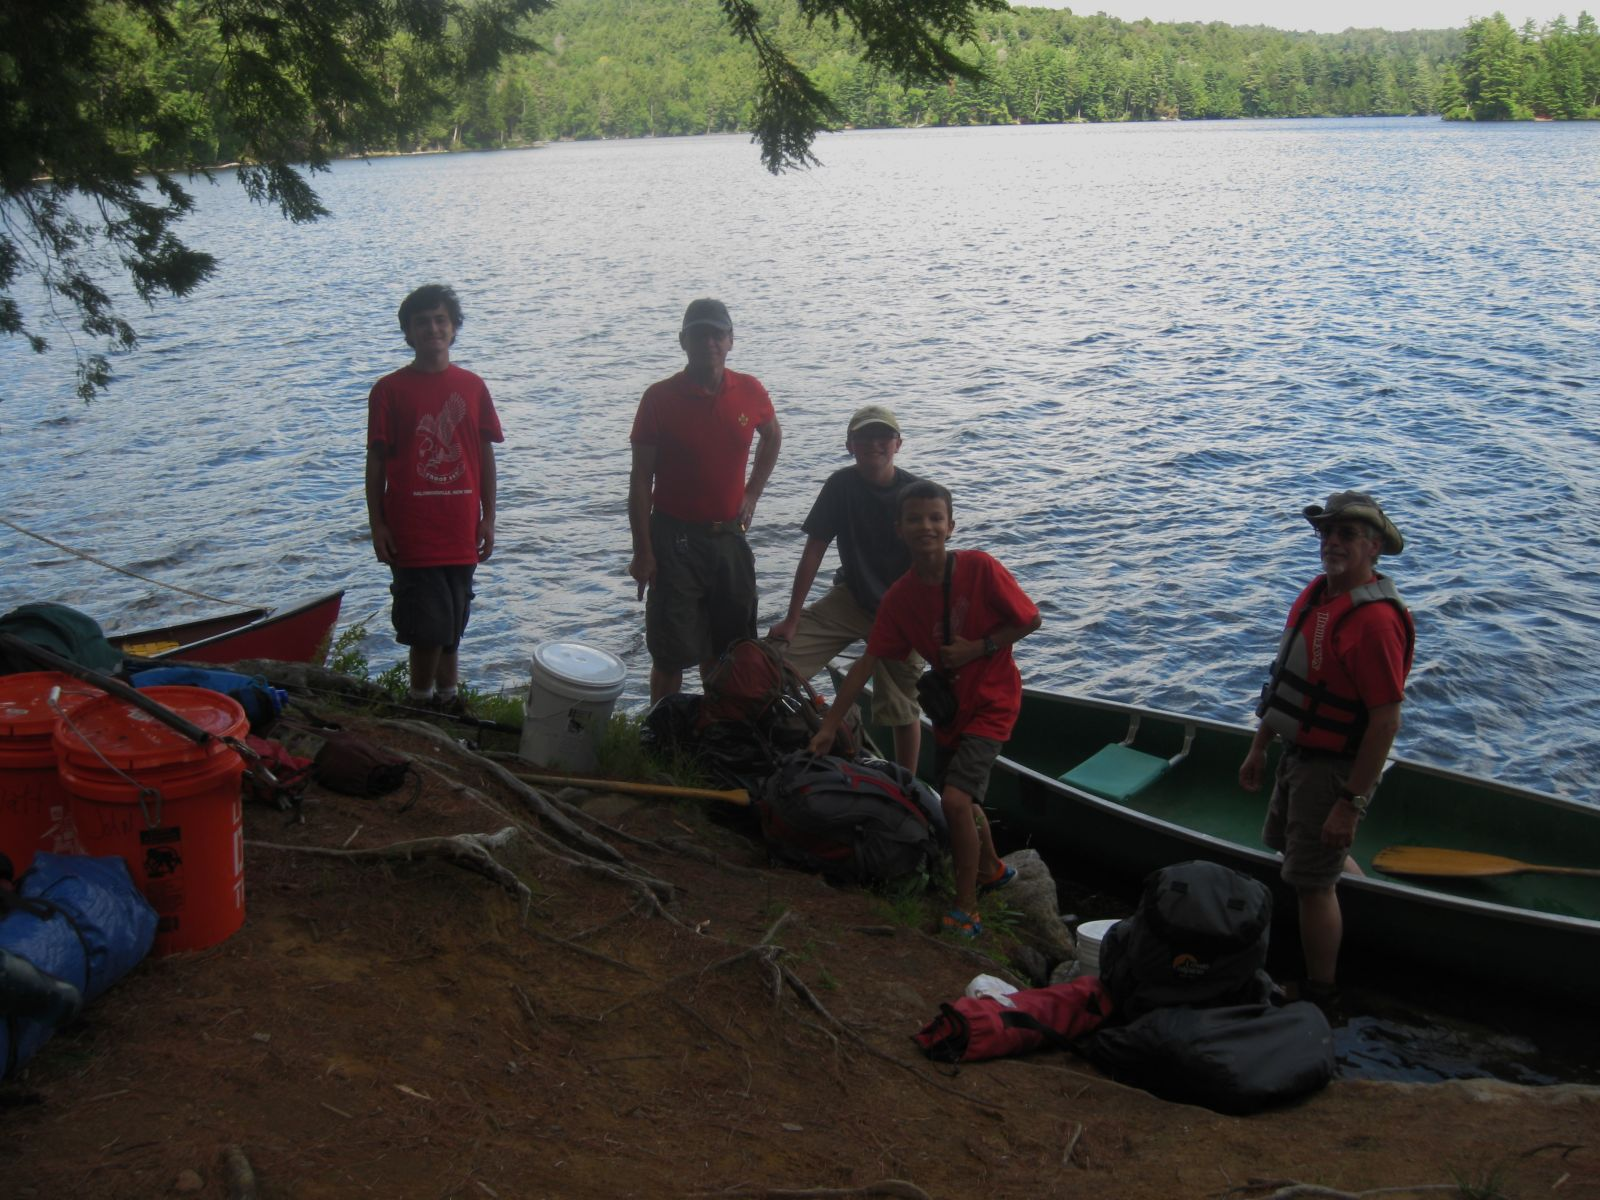 The Scouts came paddling in!